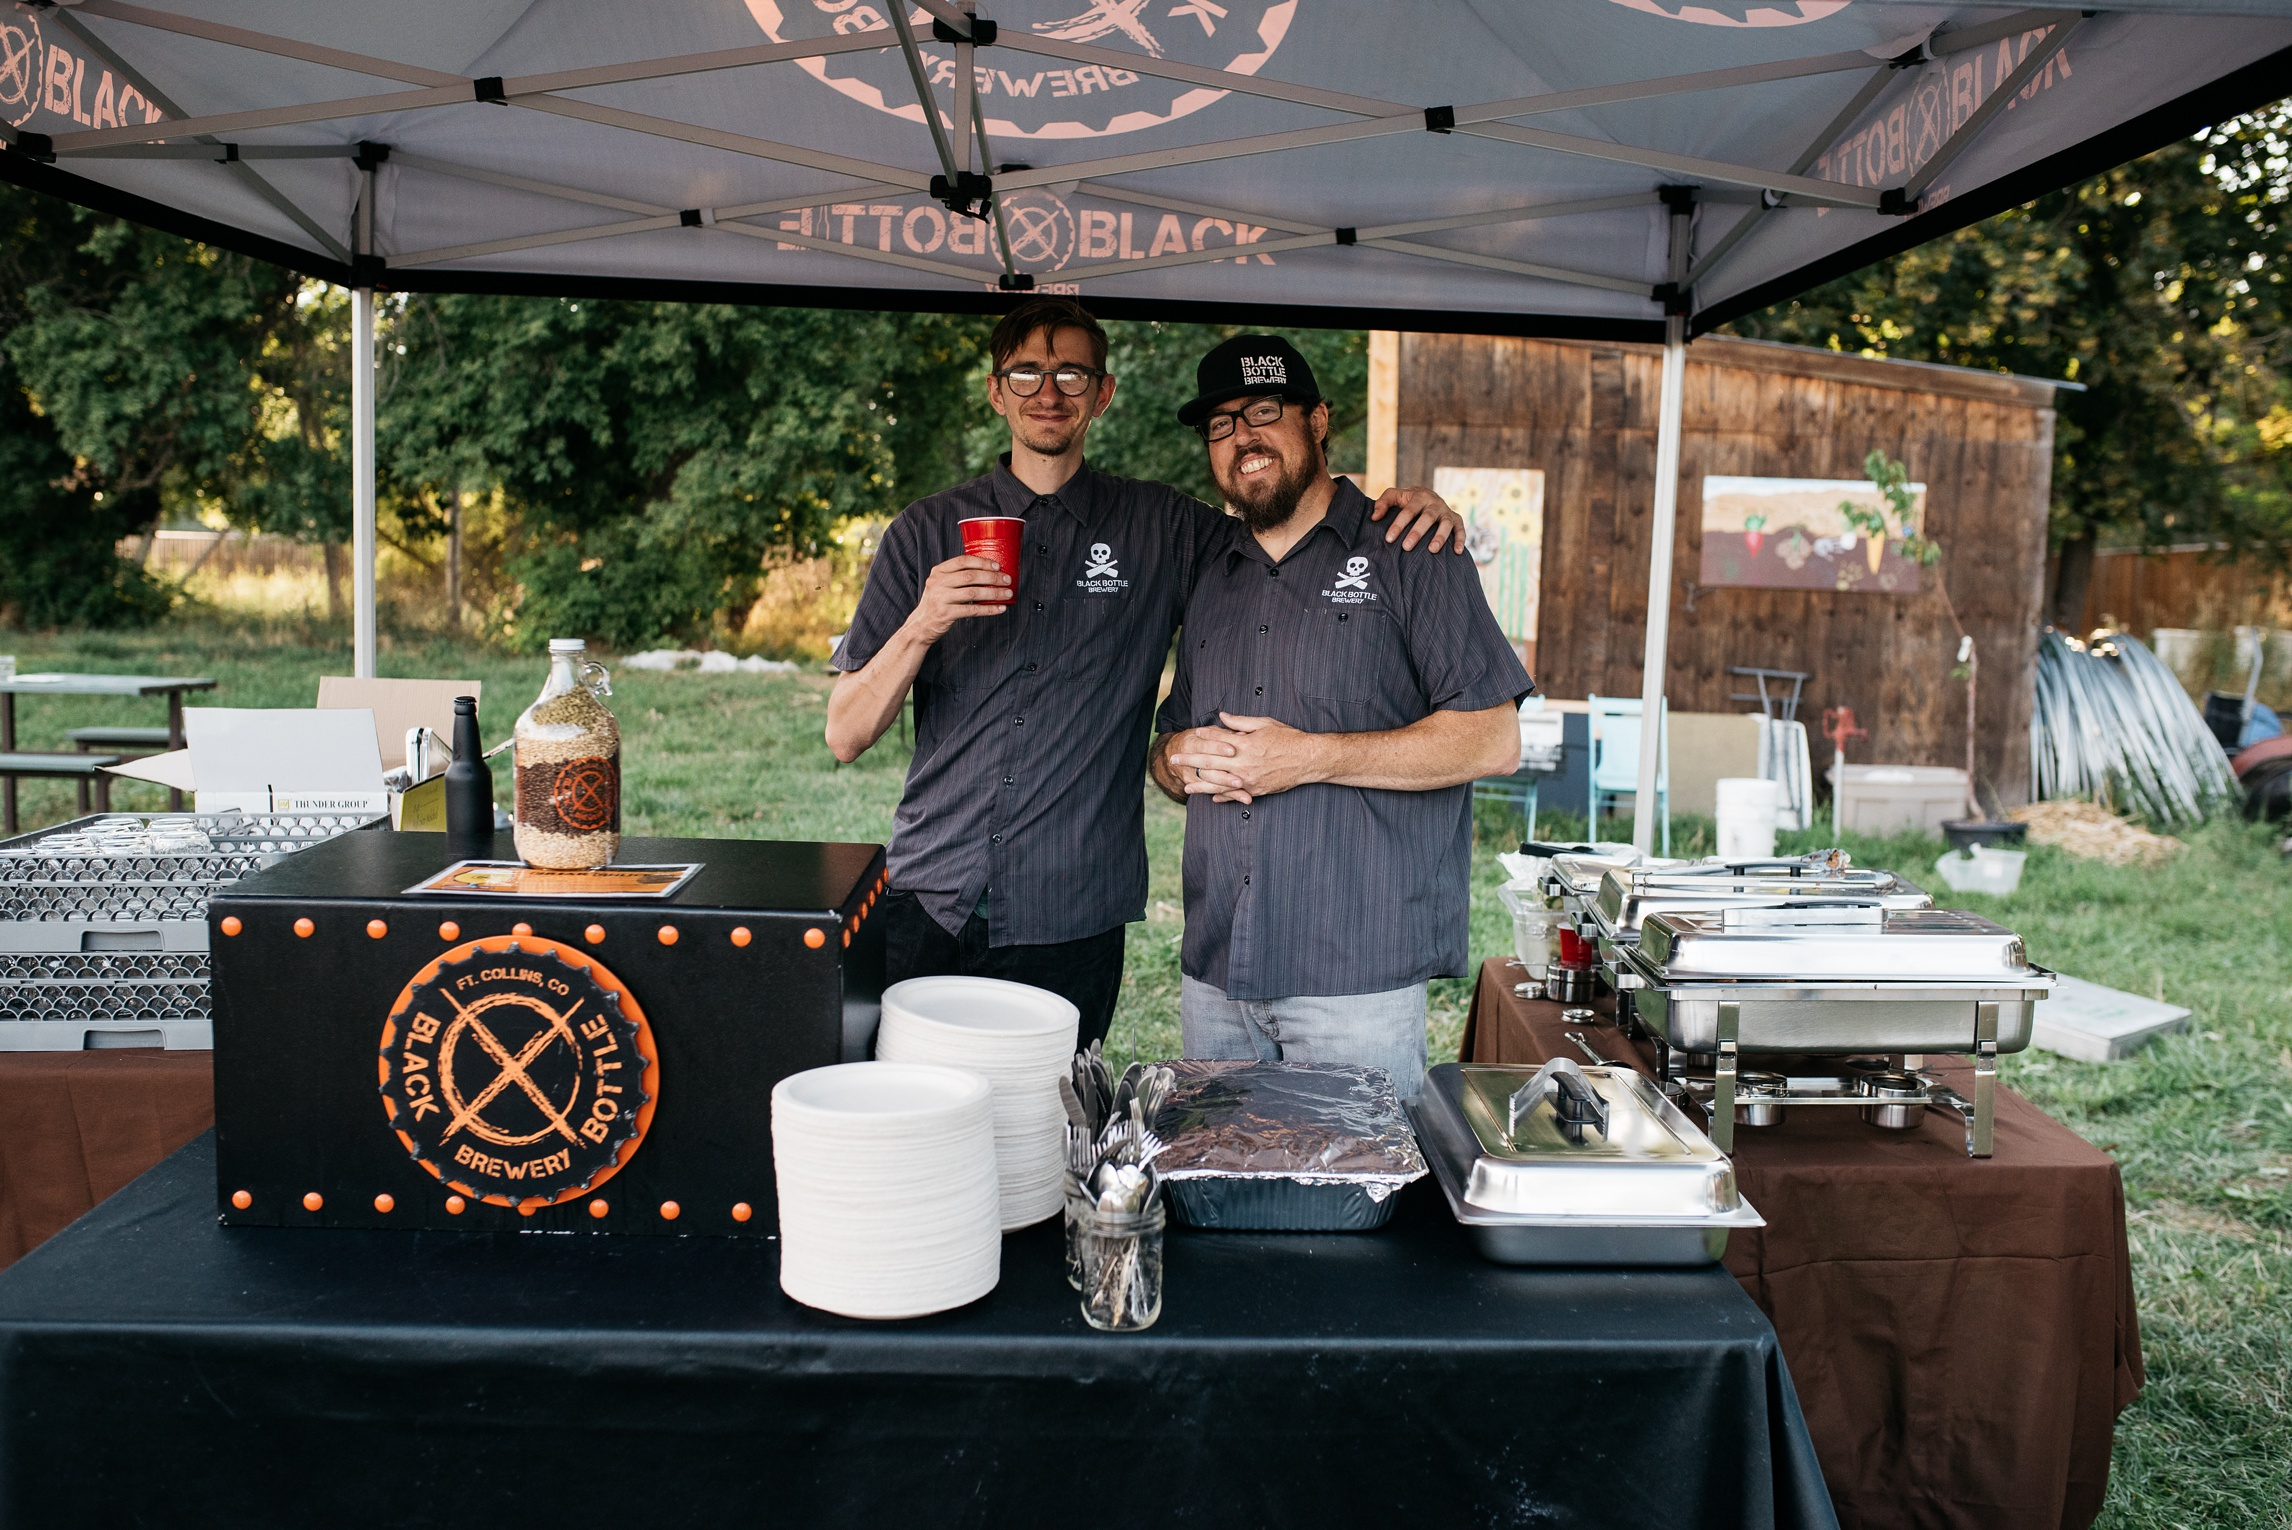 The crew from Black Bottle Brewery at the 3 Forks Progressive Farm Dinner presented by Fortified Collaborations. Event photography by Sonja Salzburg of Sonja K Photography.